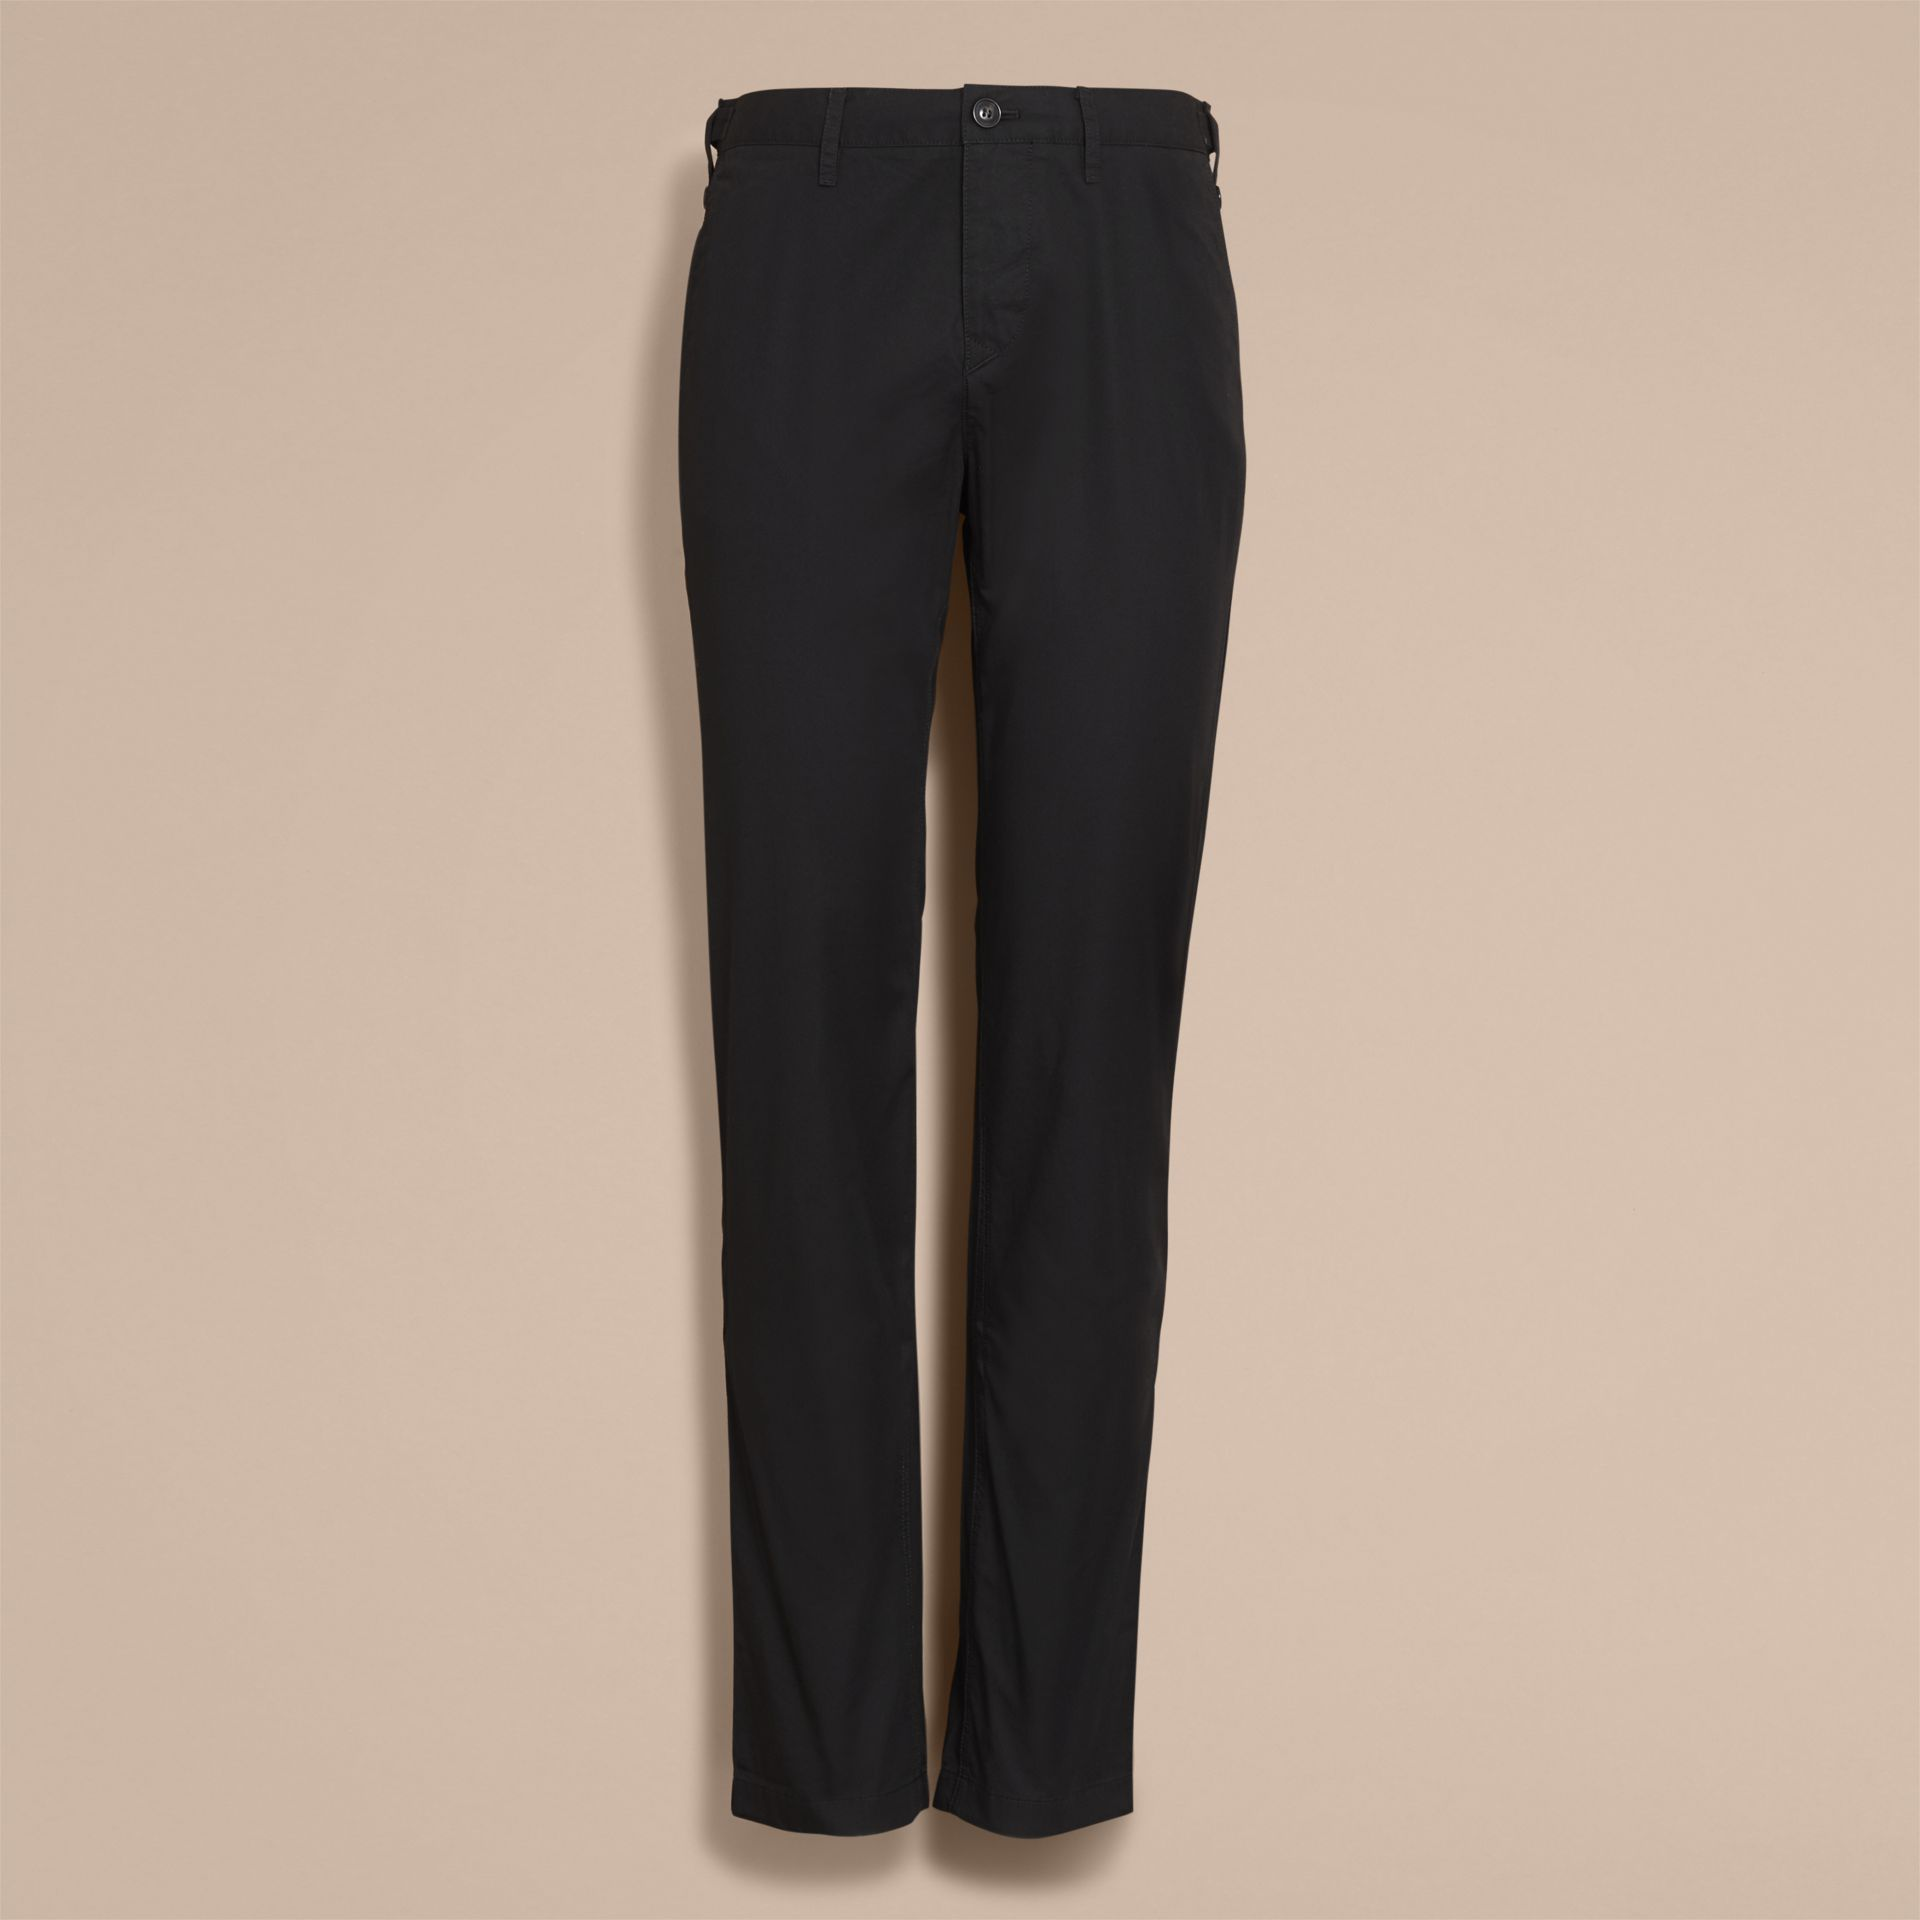 Pantalon chino de coupe droite en coton (Noir) - Homme | Burberry - photo de la galerie 4